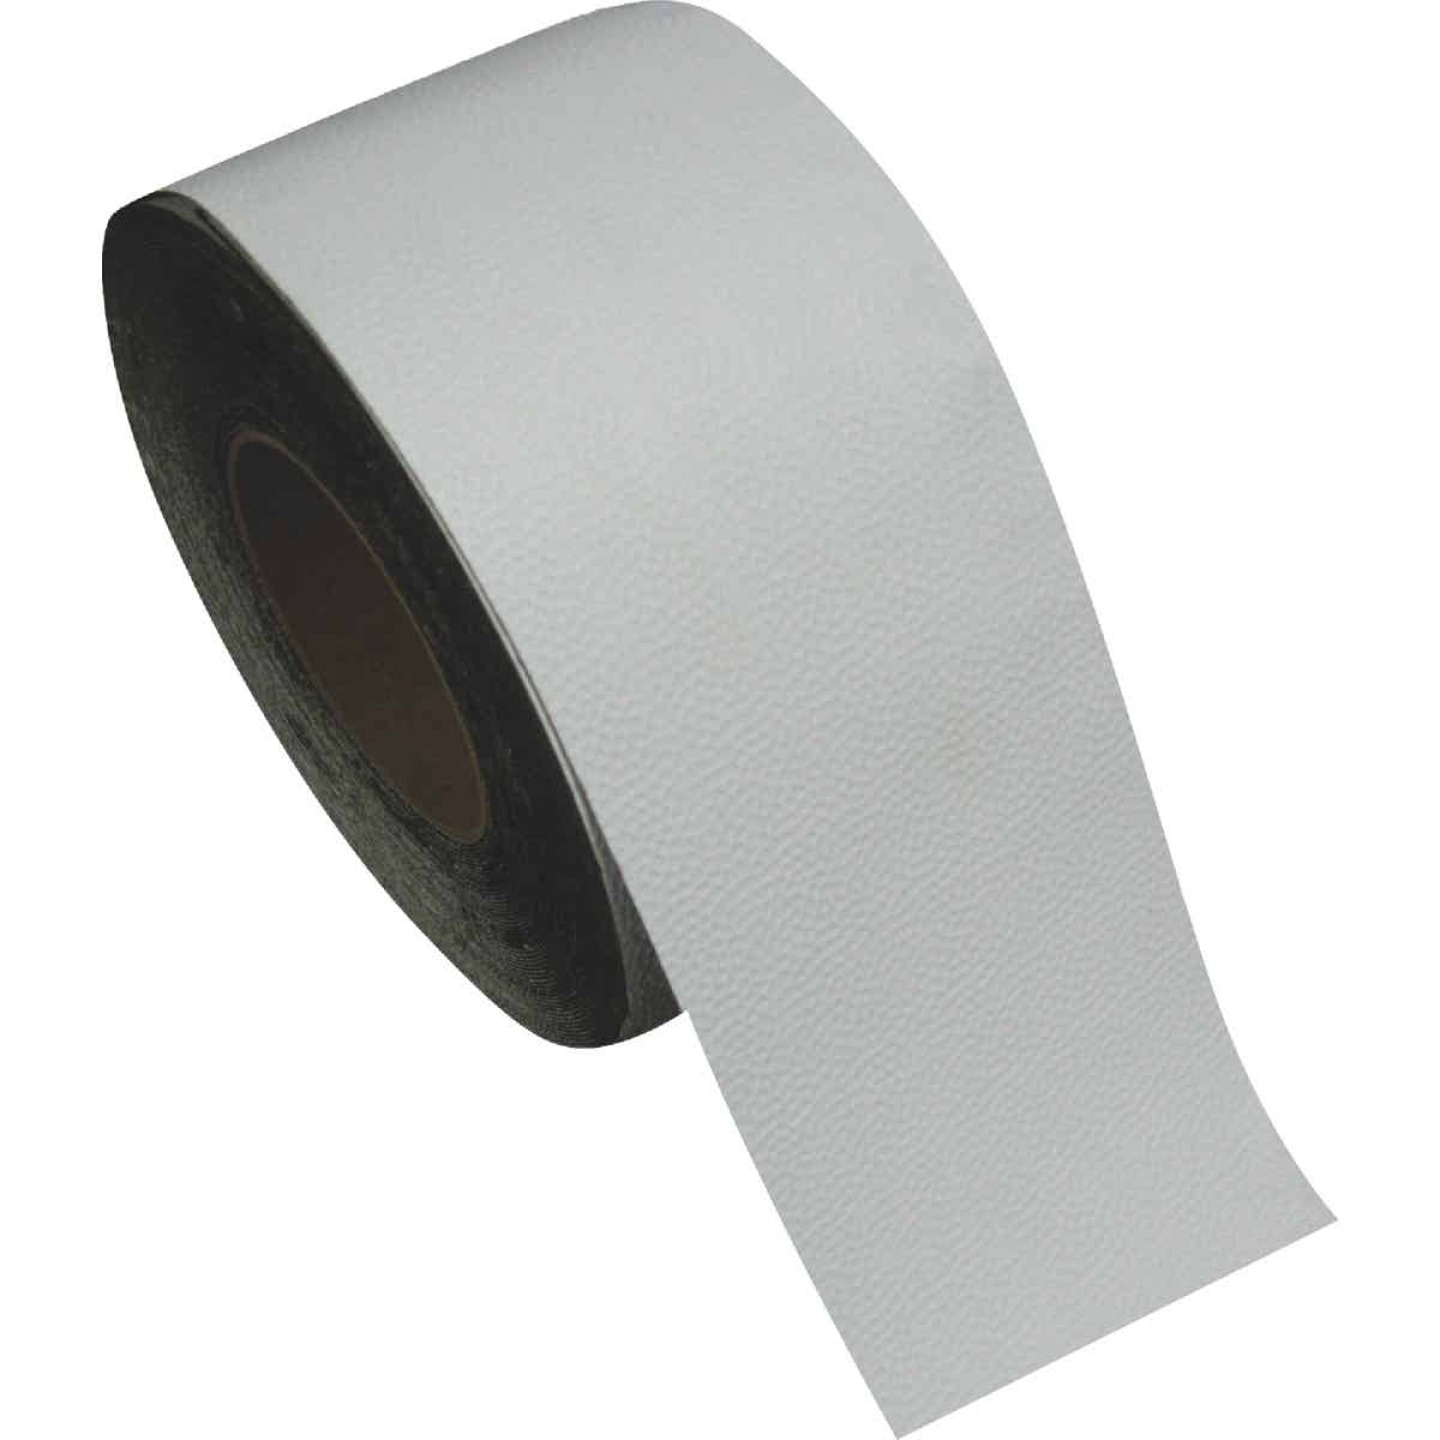 MFM WindowWrap W3 Tape 6 In. X 75 Ft. Universal Self-Adhering Window Tape Image 1